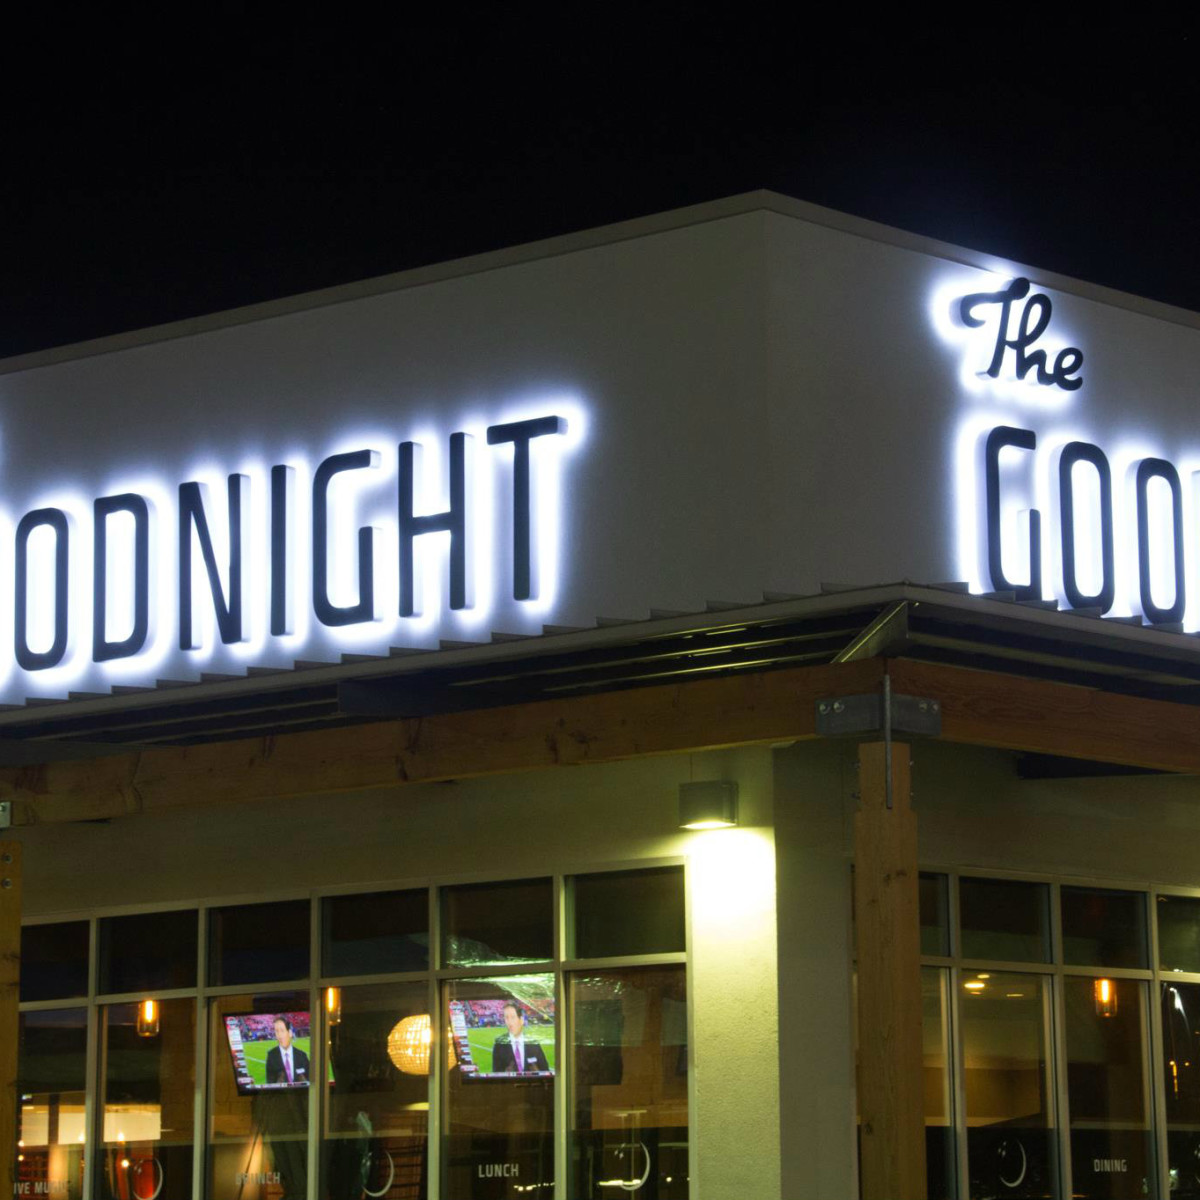 The Goodnight lounge